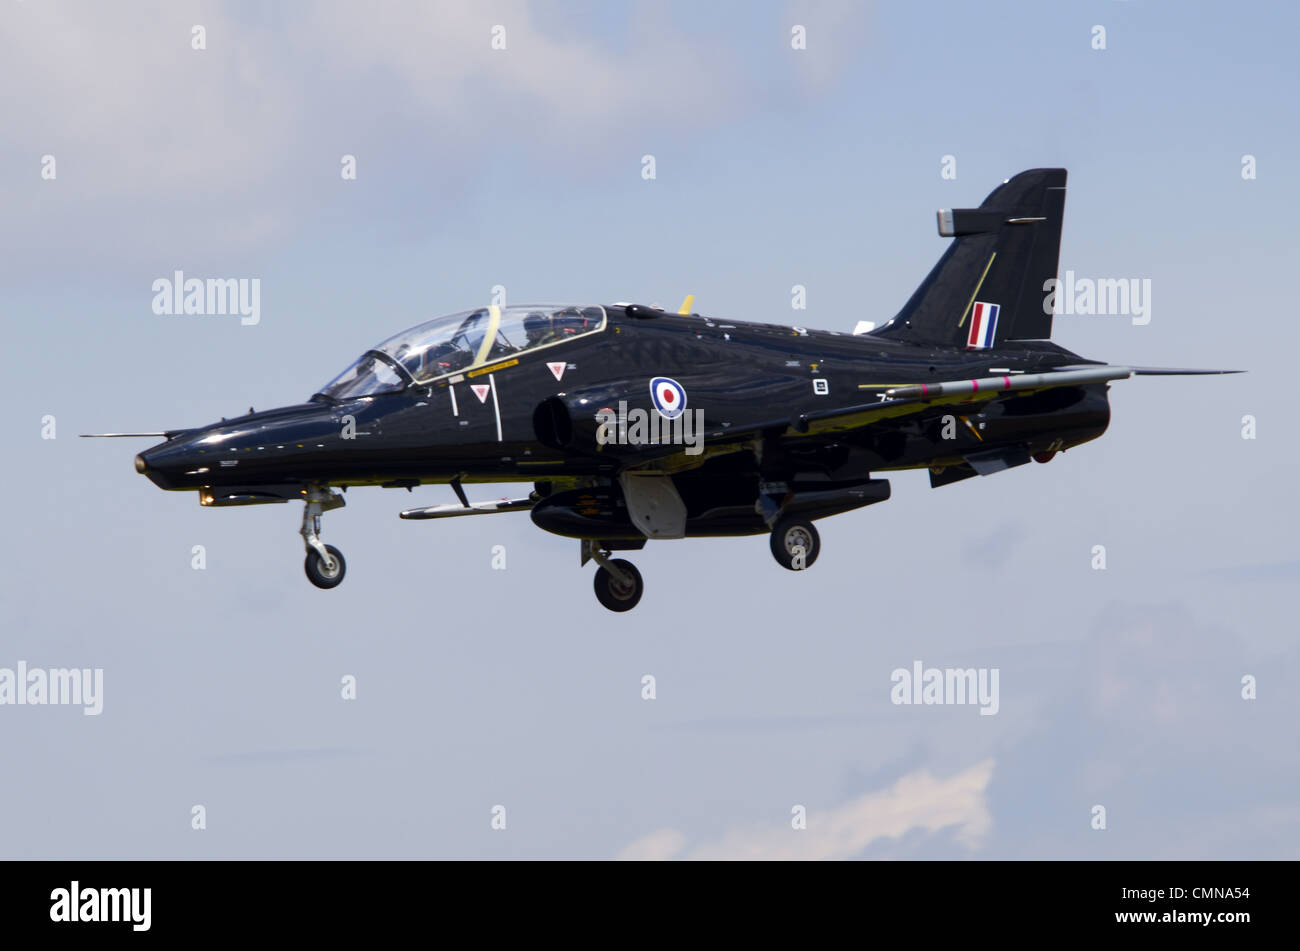 BAe Systems Hawk T2 operated by the RAF on final approach for landing at RAF Fairford - Stock Image